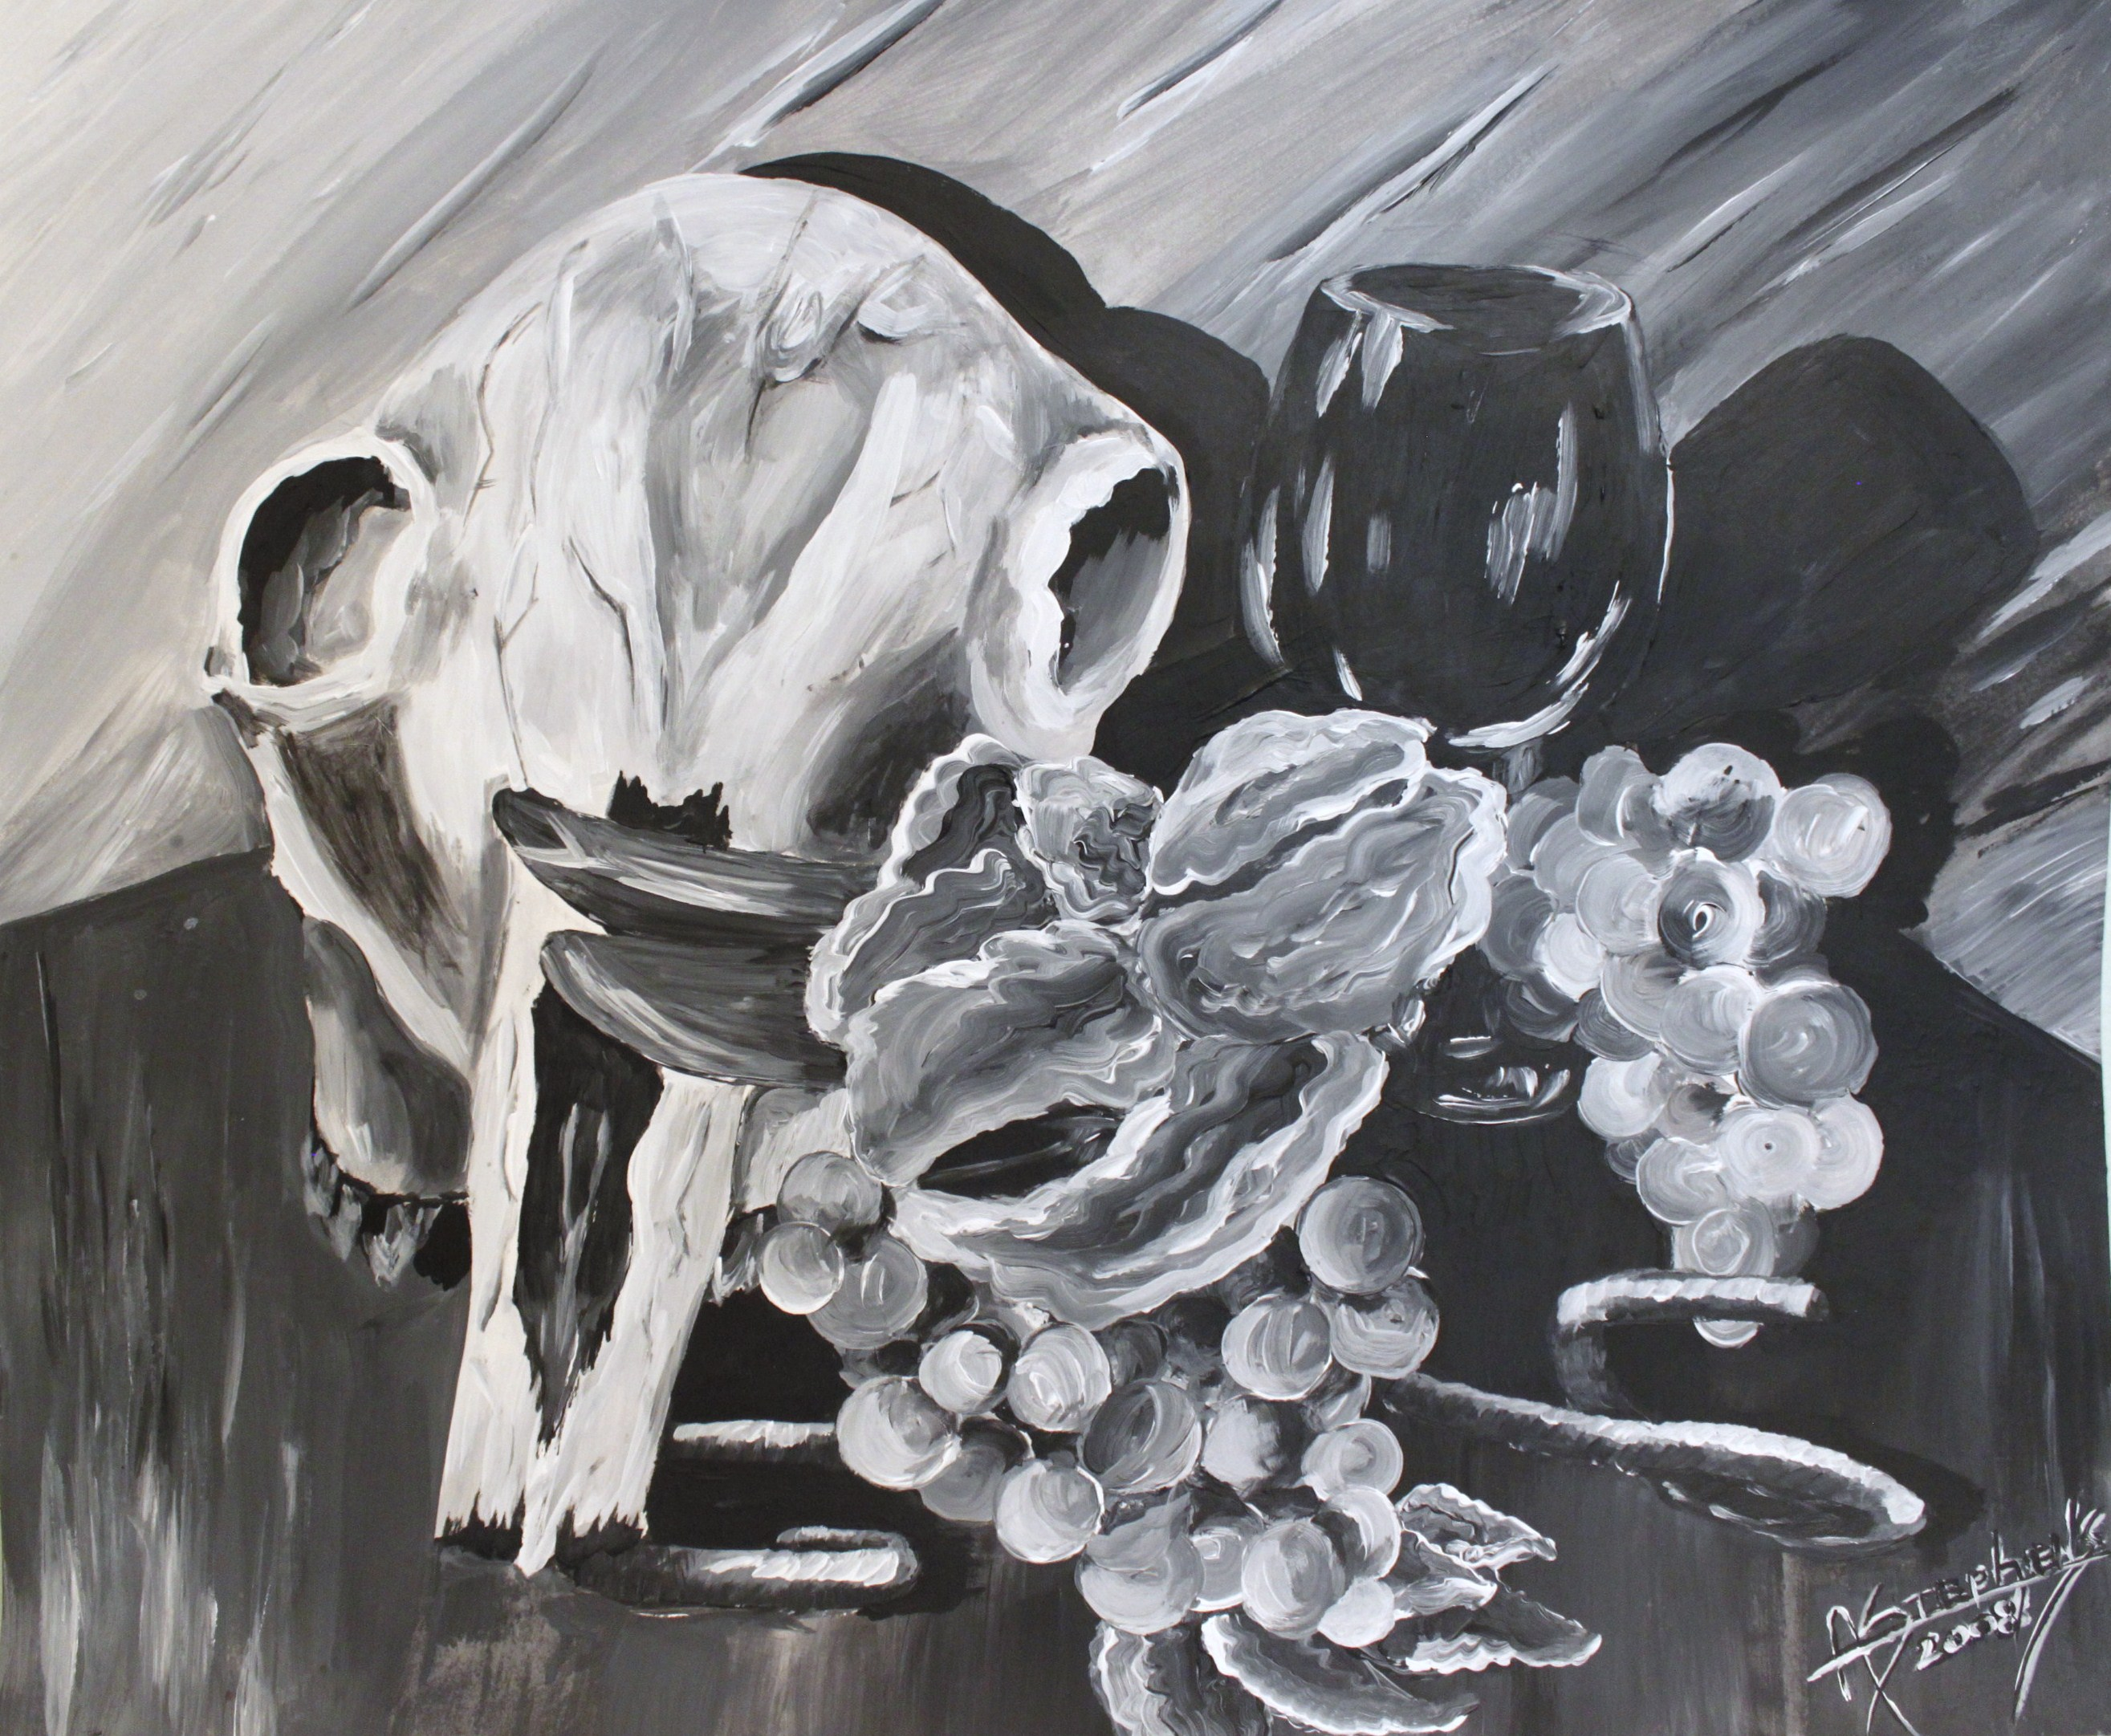 Black and white painting of animal skull, grapes, and wine glass